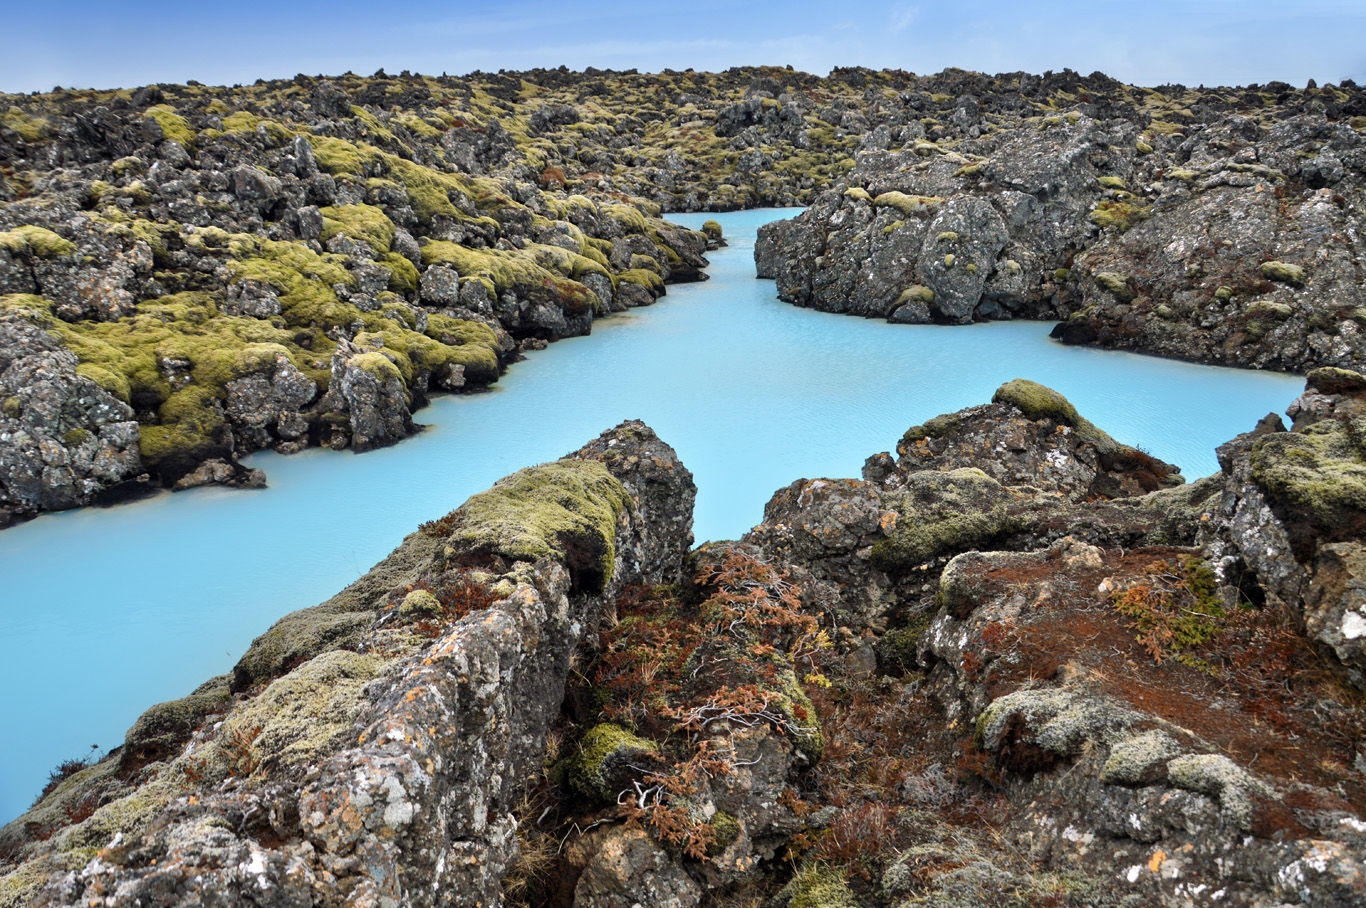 Blue pool among volcanic rock